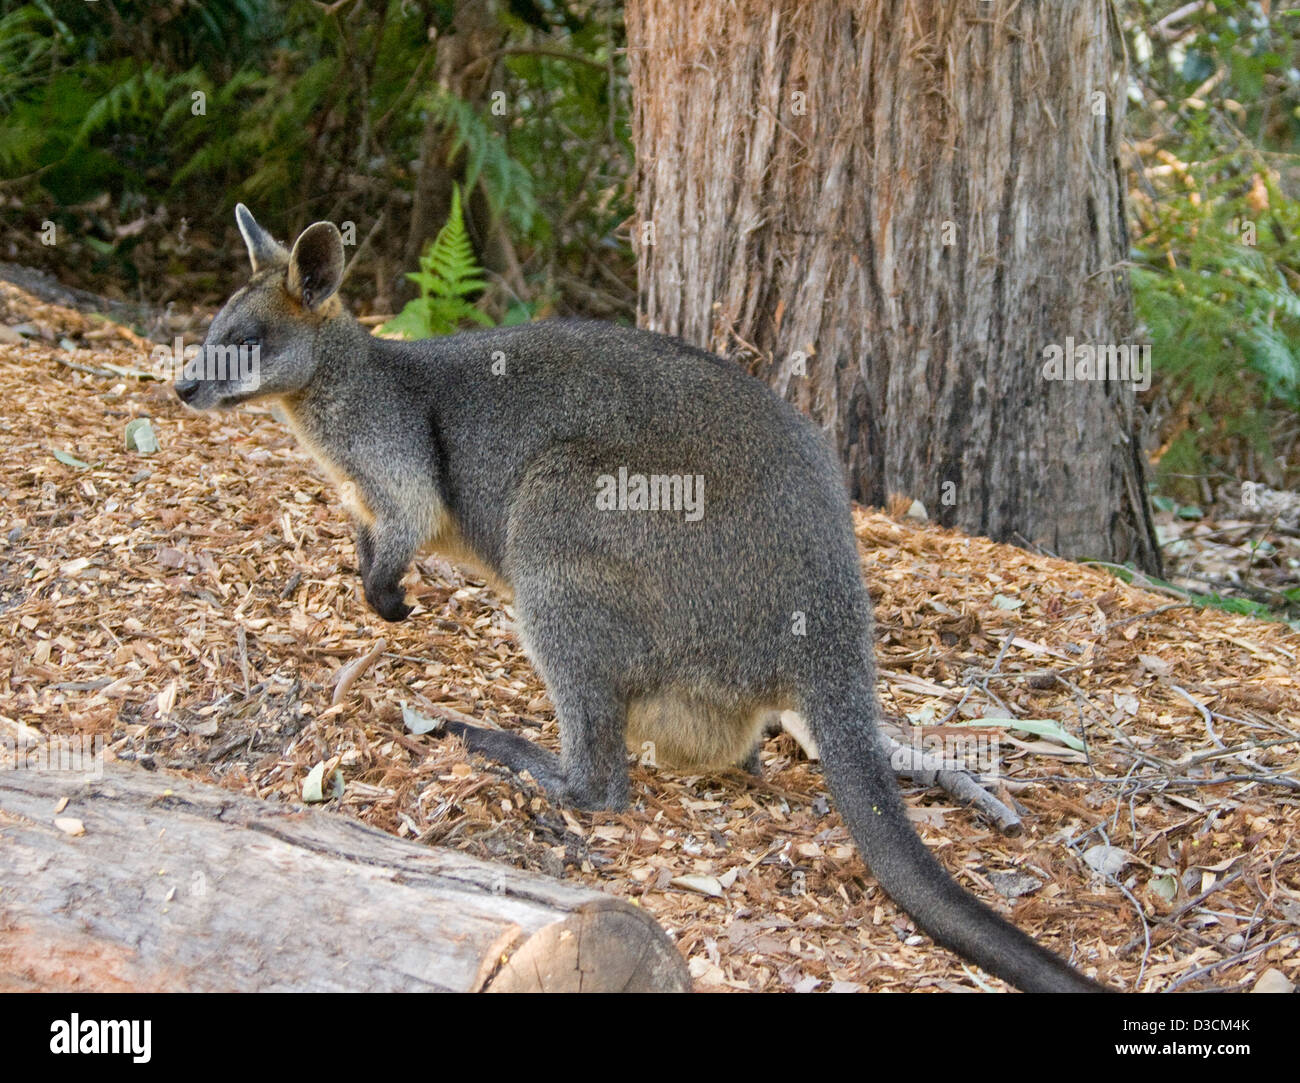 Female swamp wallaby, Wallabia bicolour with joey in pouch in the wild in Booderee National Park, NSW Australia Stock Photo